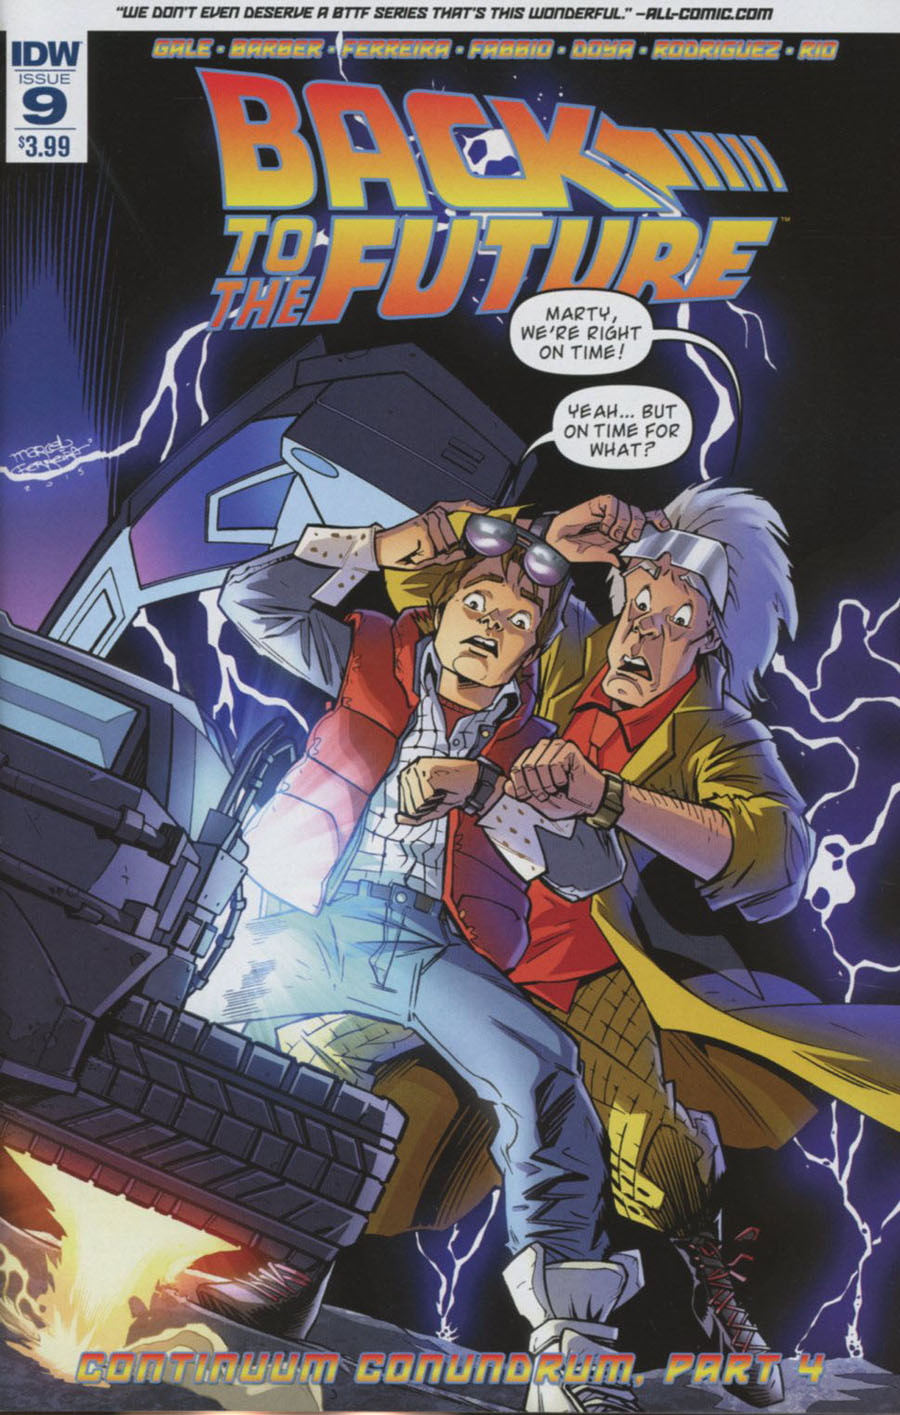 Back To The Future Vol 2 #9 Cover A Regular Marcelo Ferreira Cover